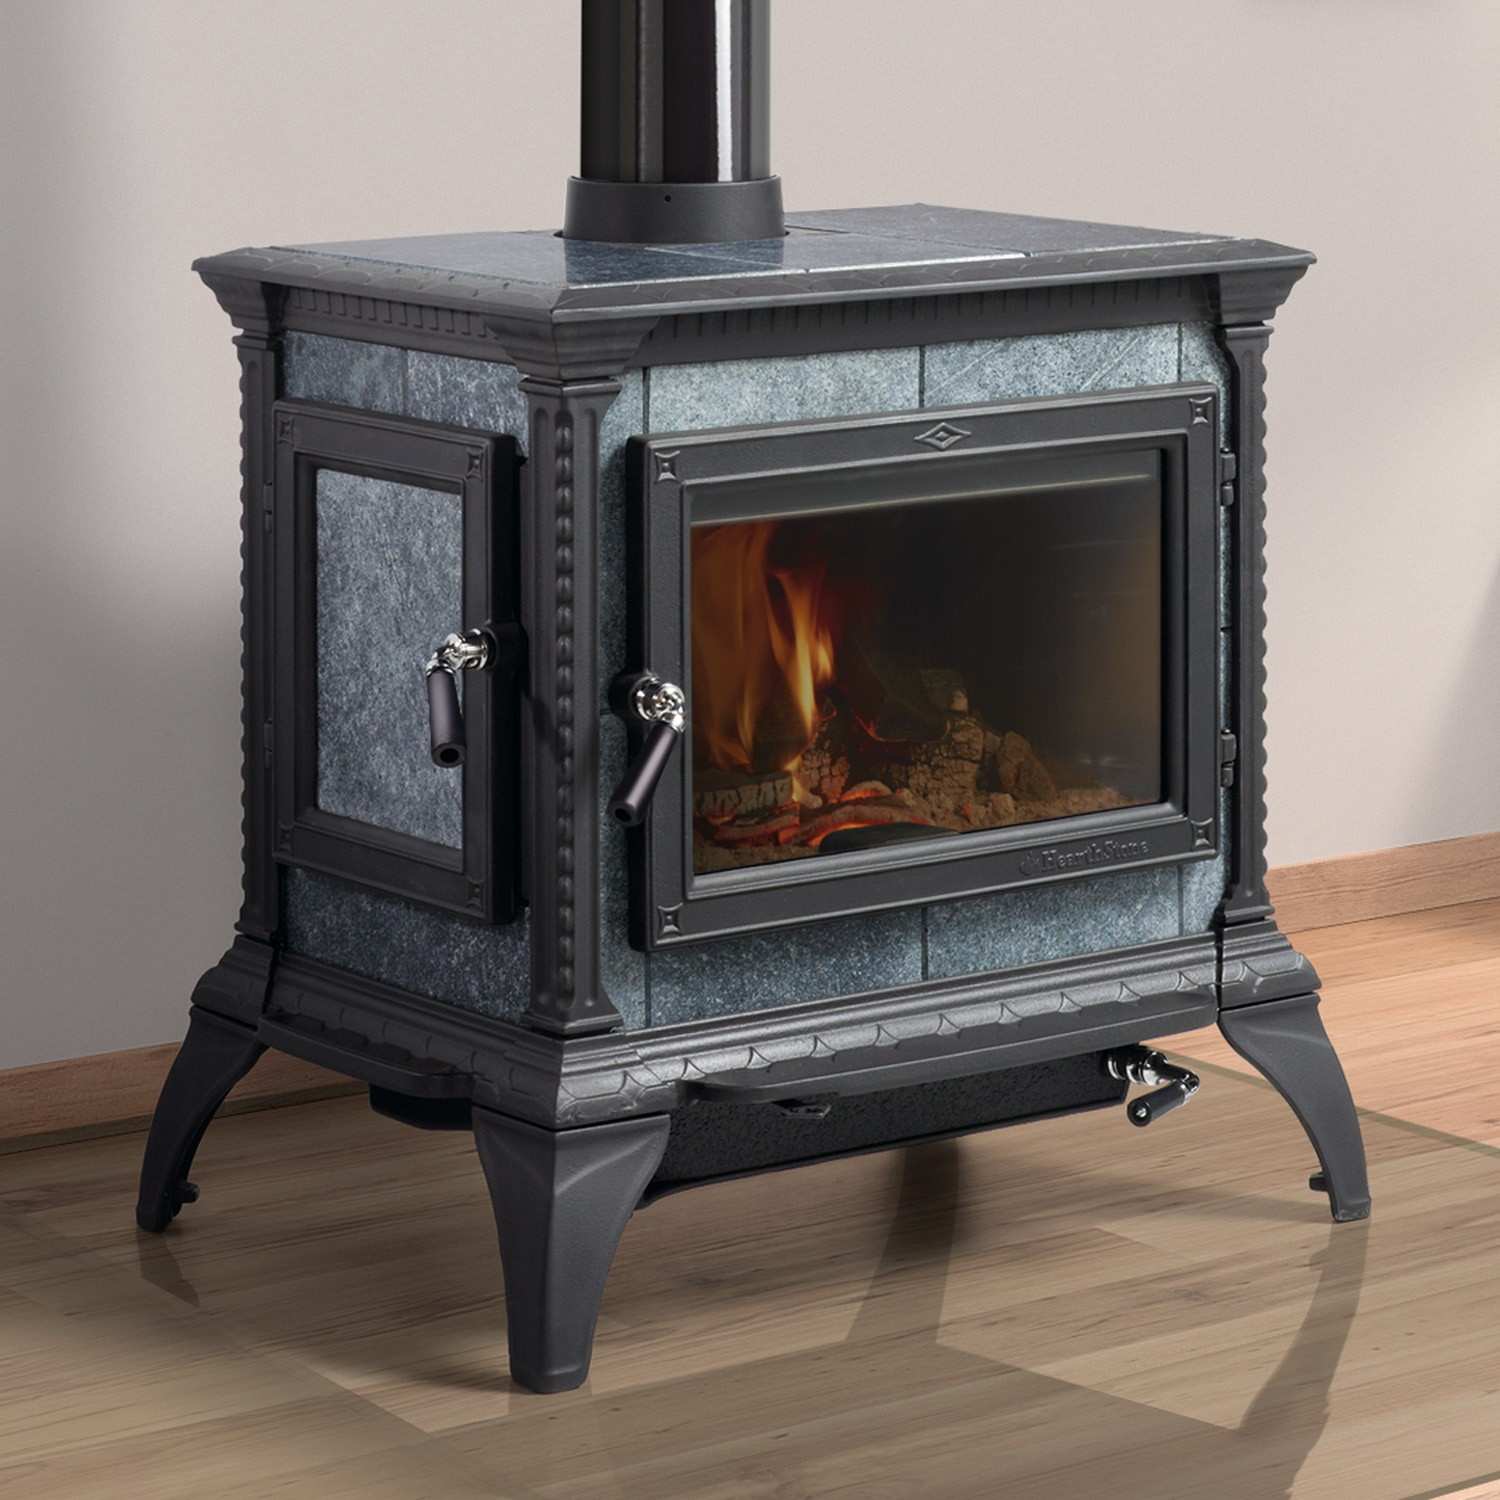 Hearthstone Heritage woodstove offers front and side load in a popular upper-middle power range.  This soapstone stove has been a best seller for years.  Recently updated new legs that help with certain hearthpad requirements.  Made in USA